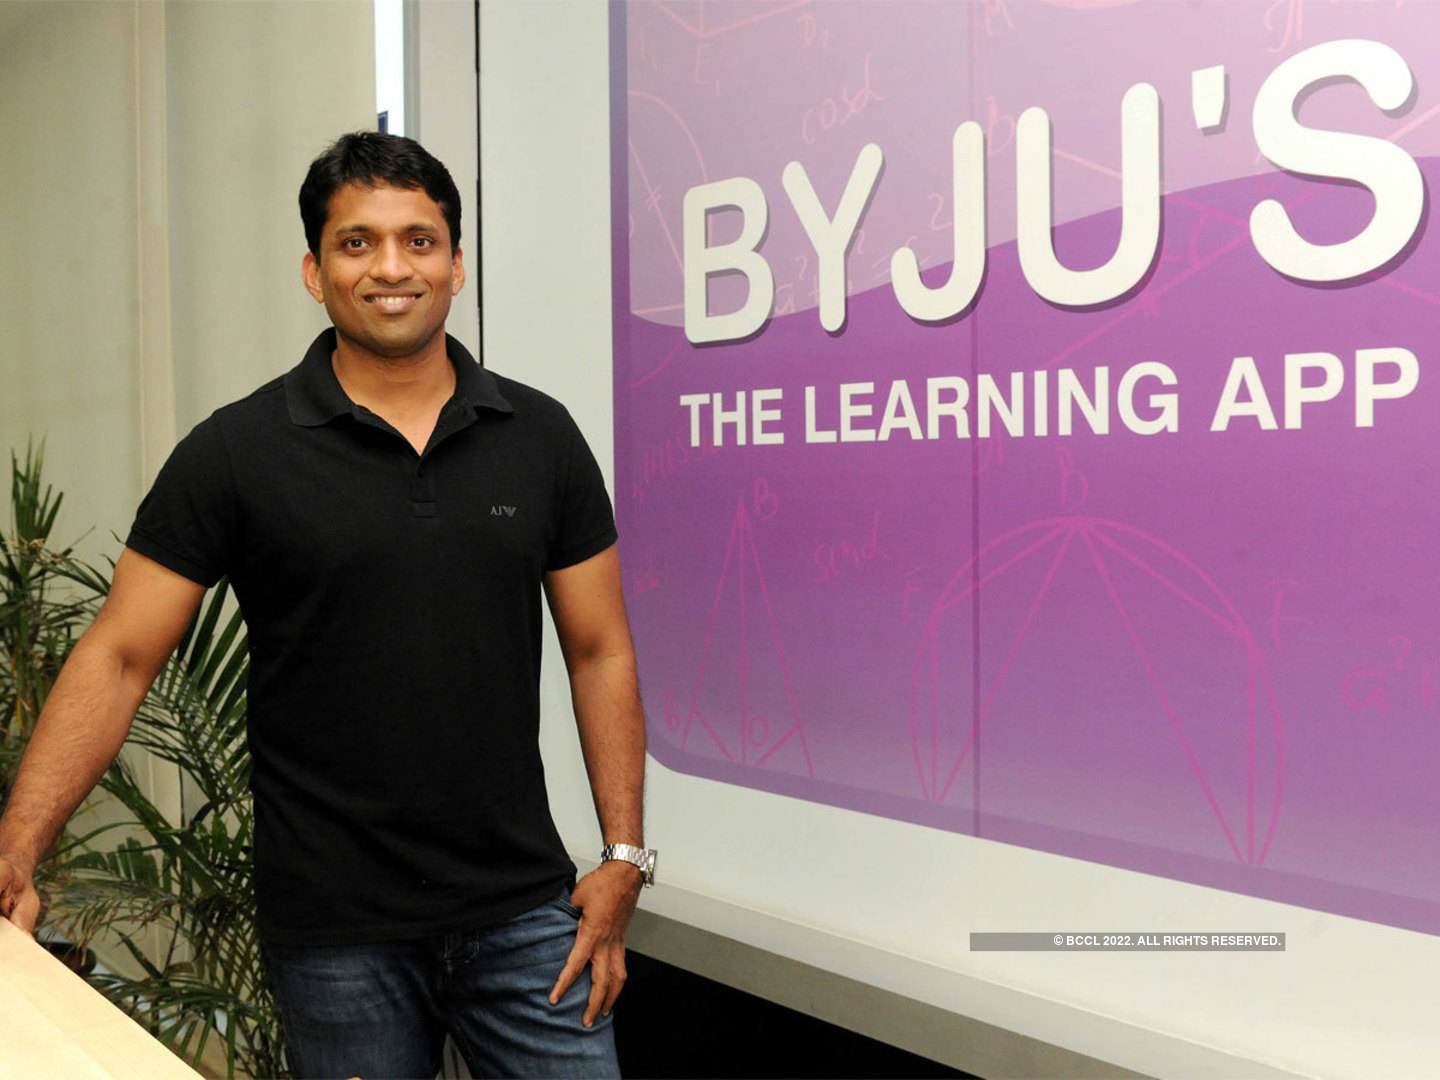 Learnt English by listening to cricket, football commentaries on radio: Byju Raveendran